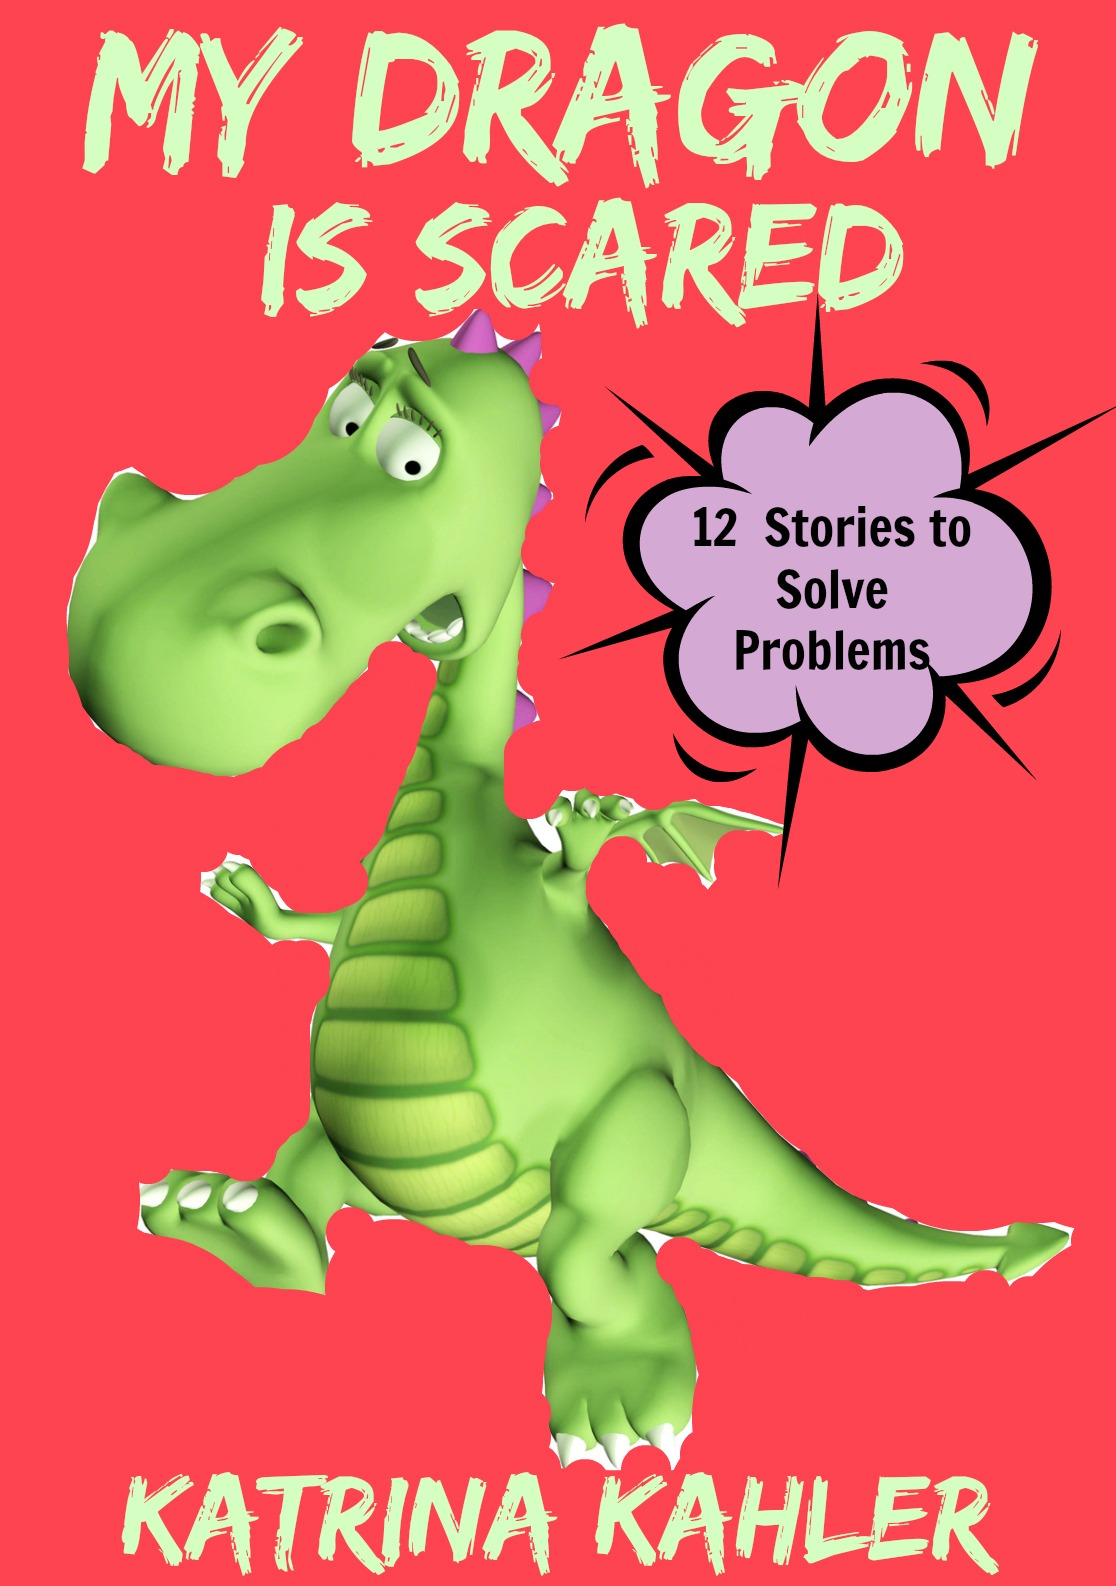 My dragon is scared! 12 stories to solve problems